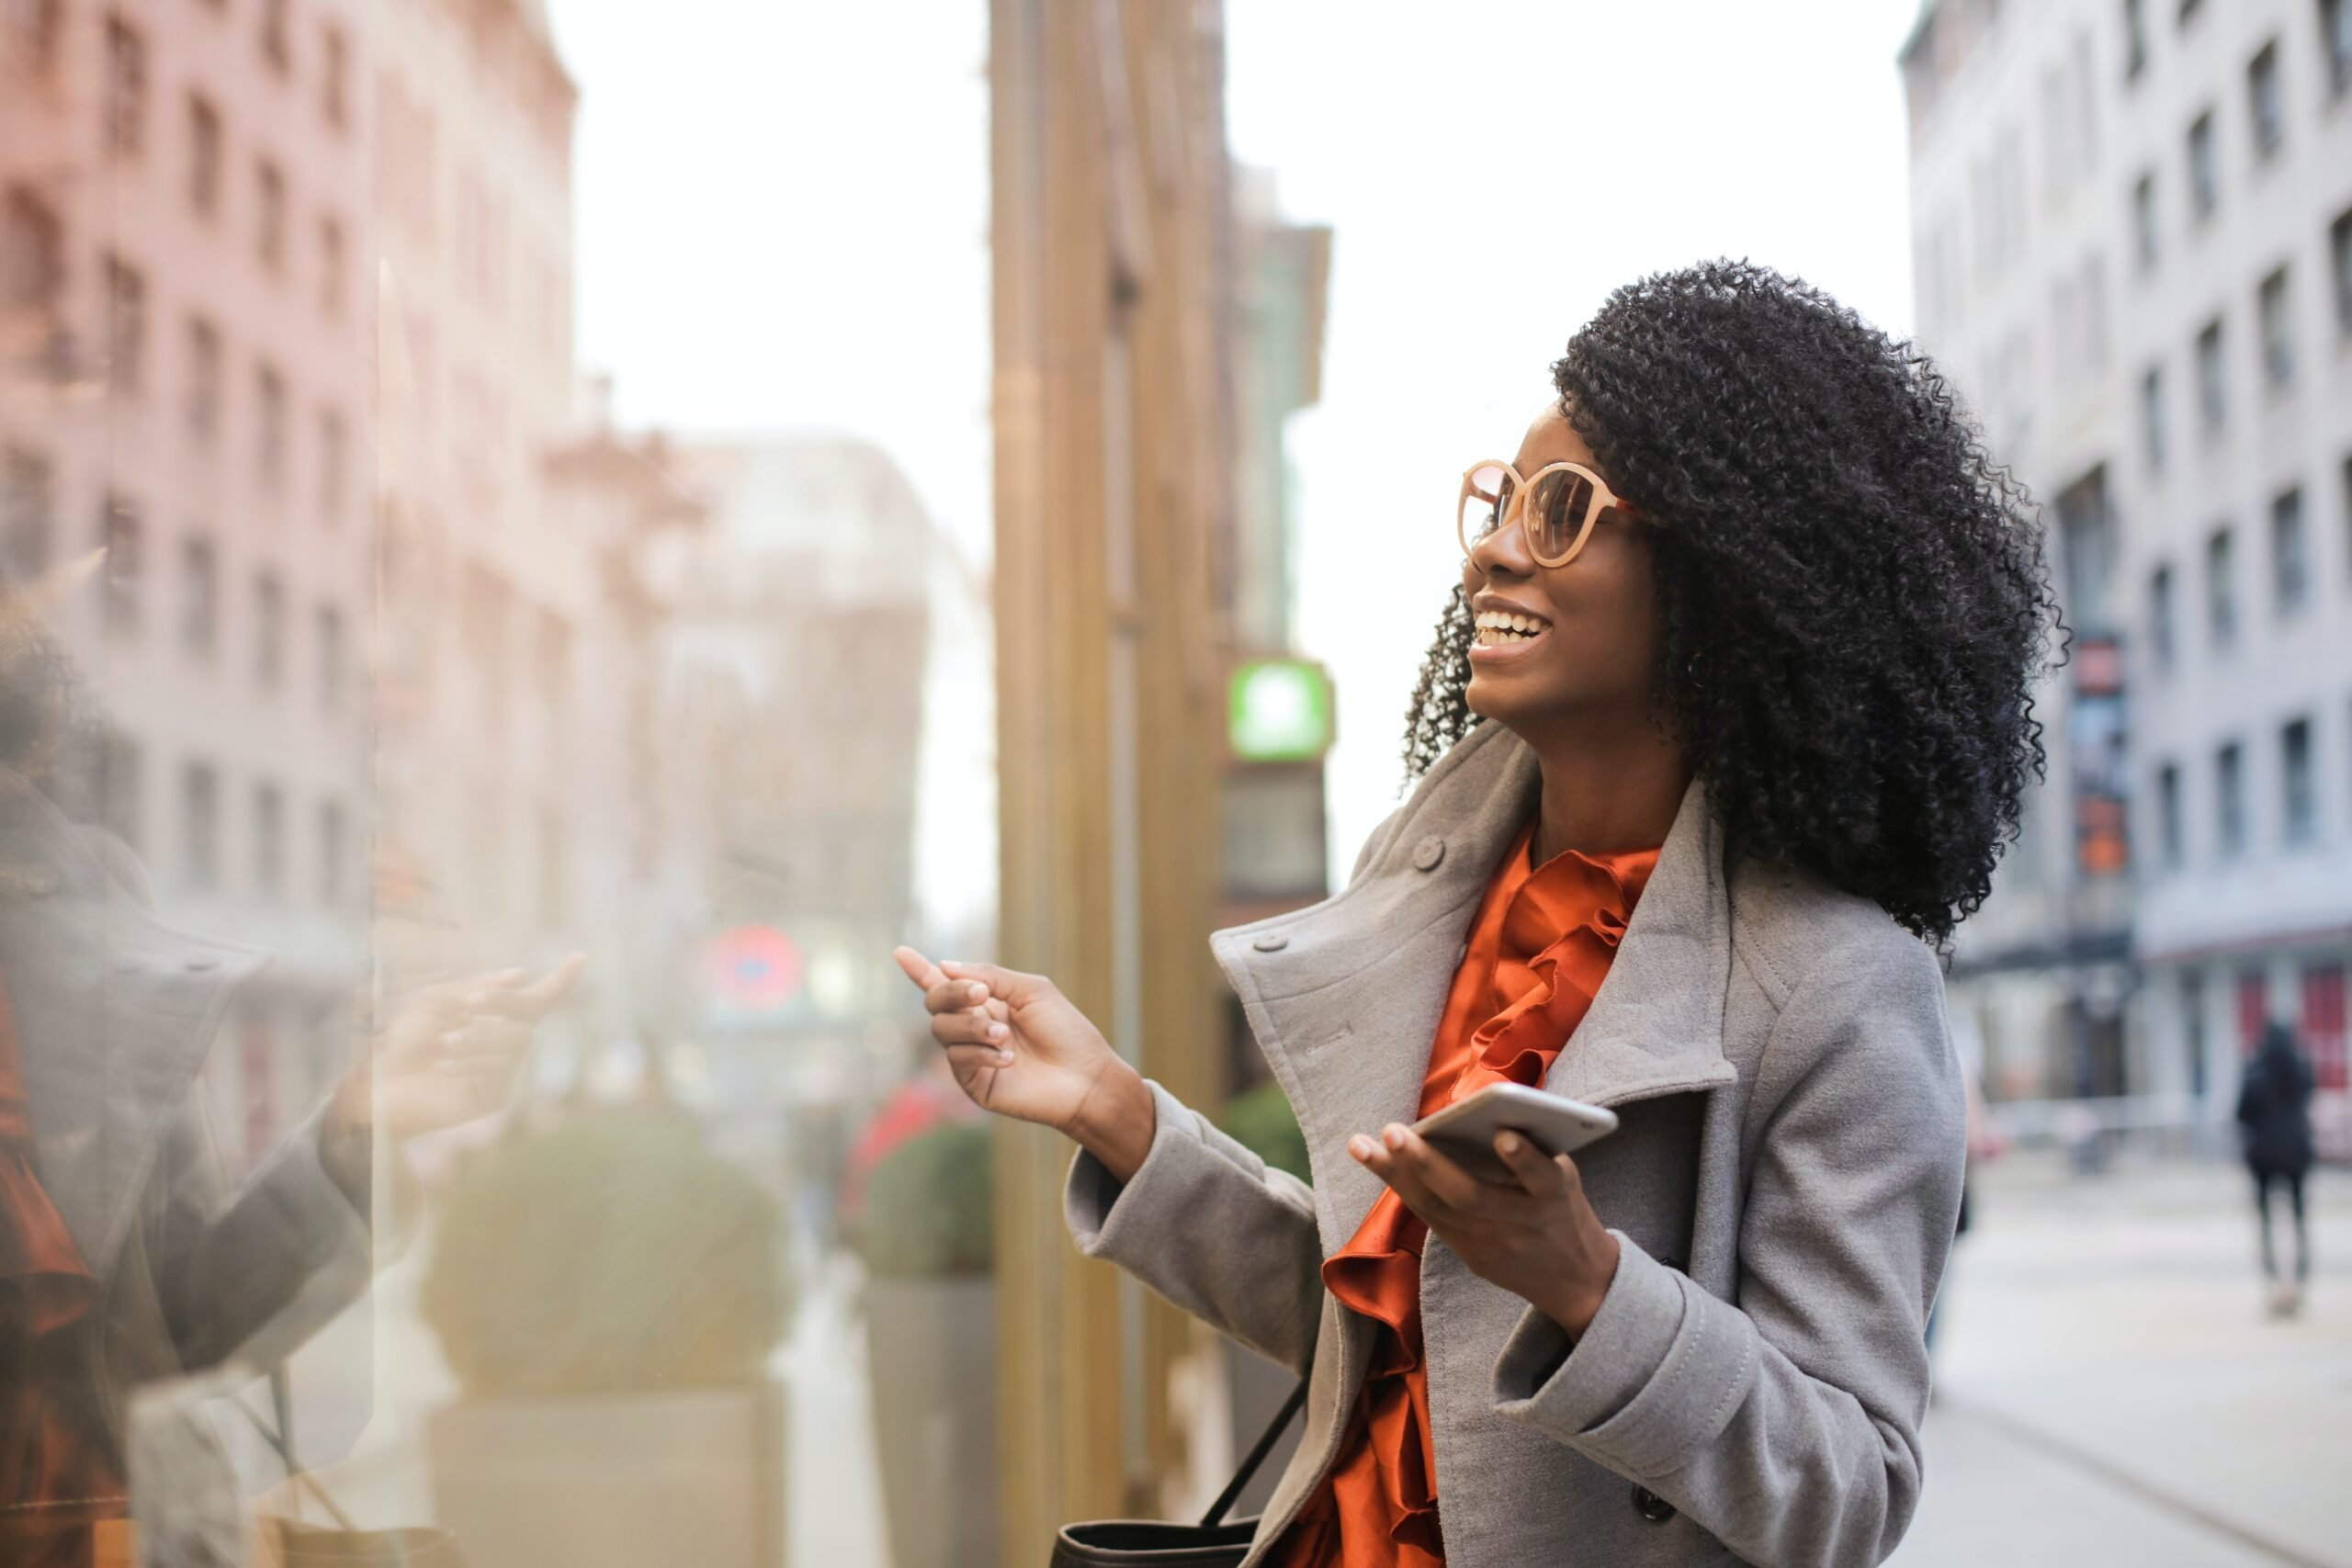 Woman in glasses holds phone in city